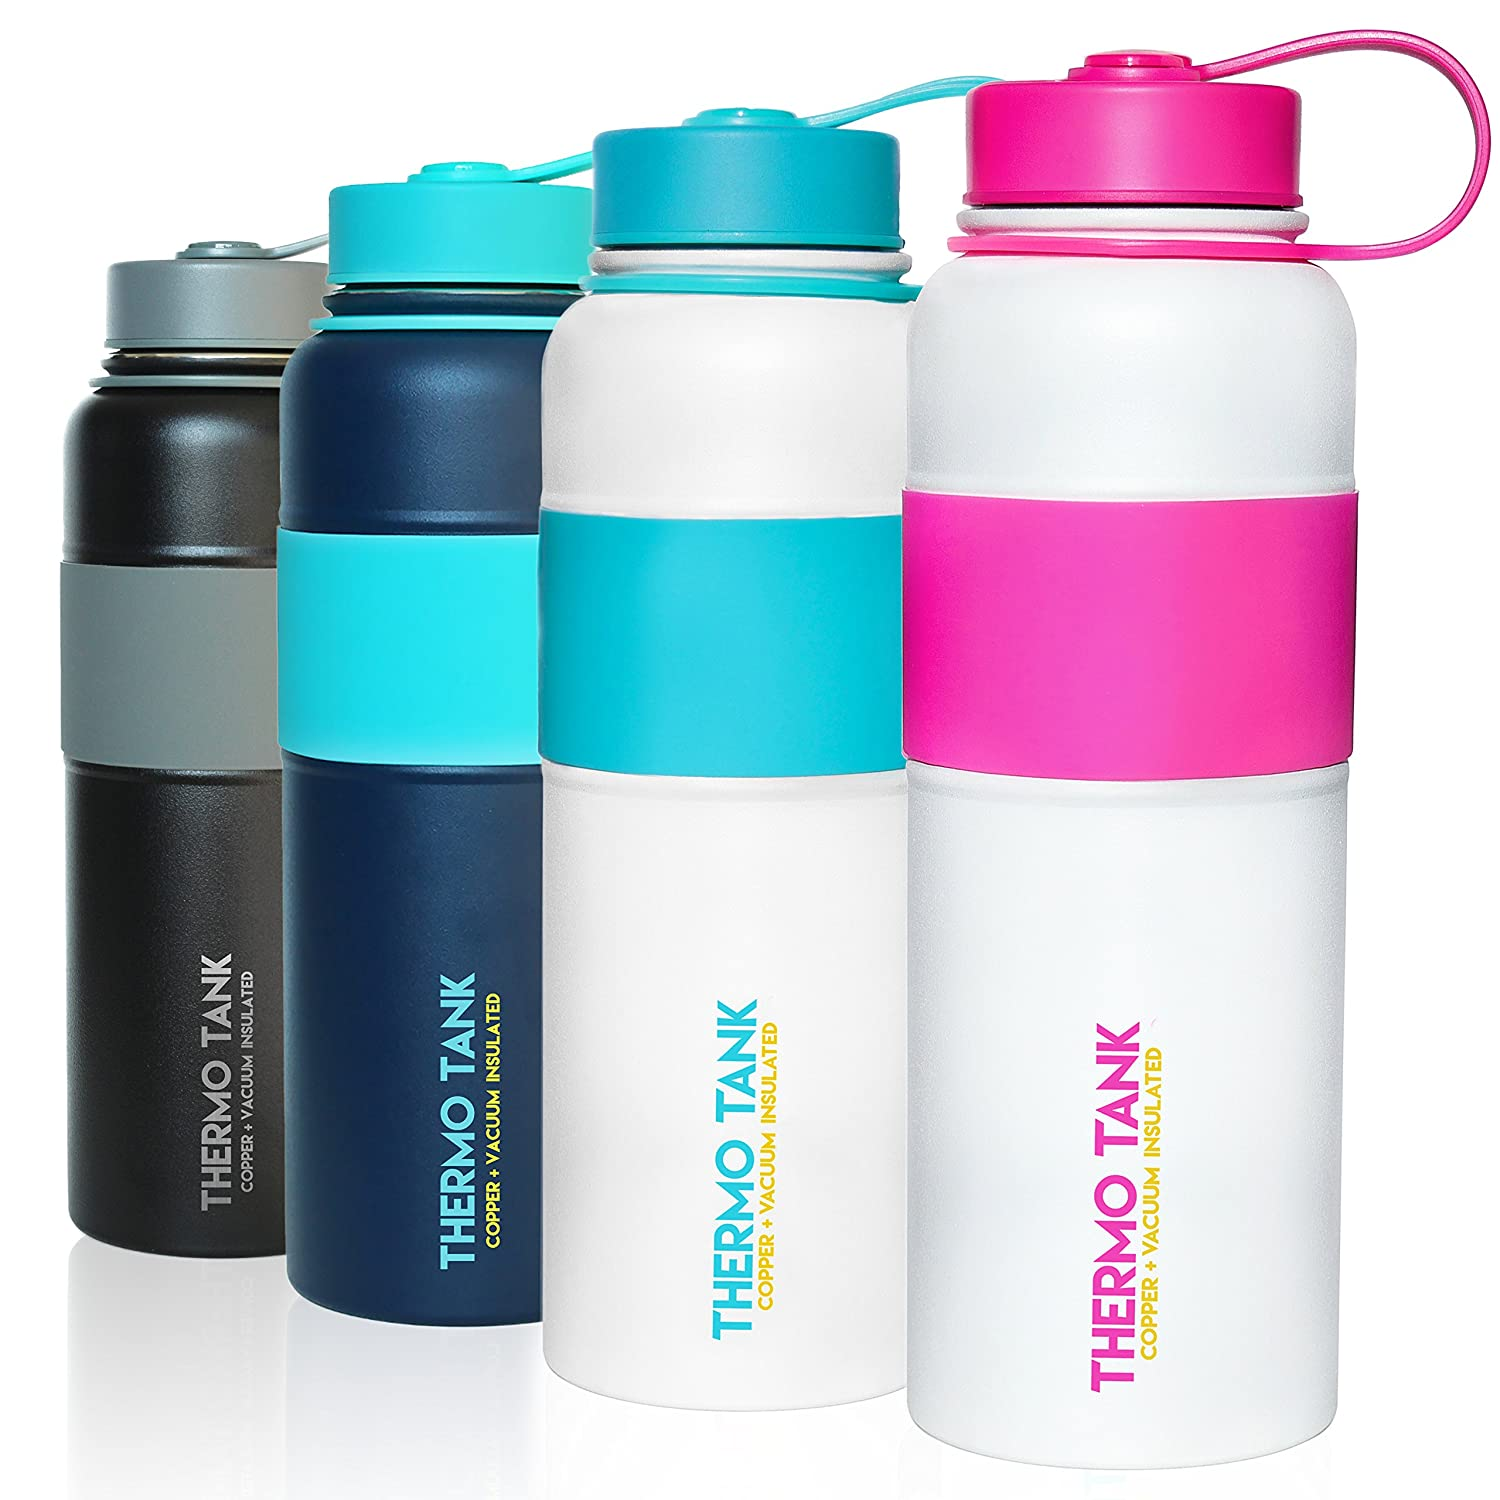 Thermo Tank Insulated Stainless Steel Water Bottle - Ice Cold 36 Hours! Vacuum + Copper Technology - Rubber Grip, SS Inner Lid - 40 Ounce